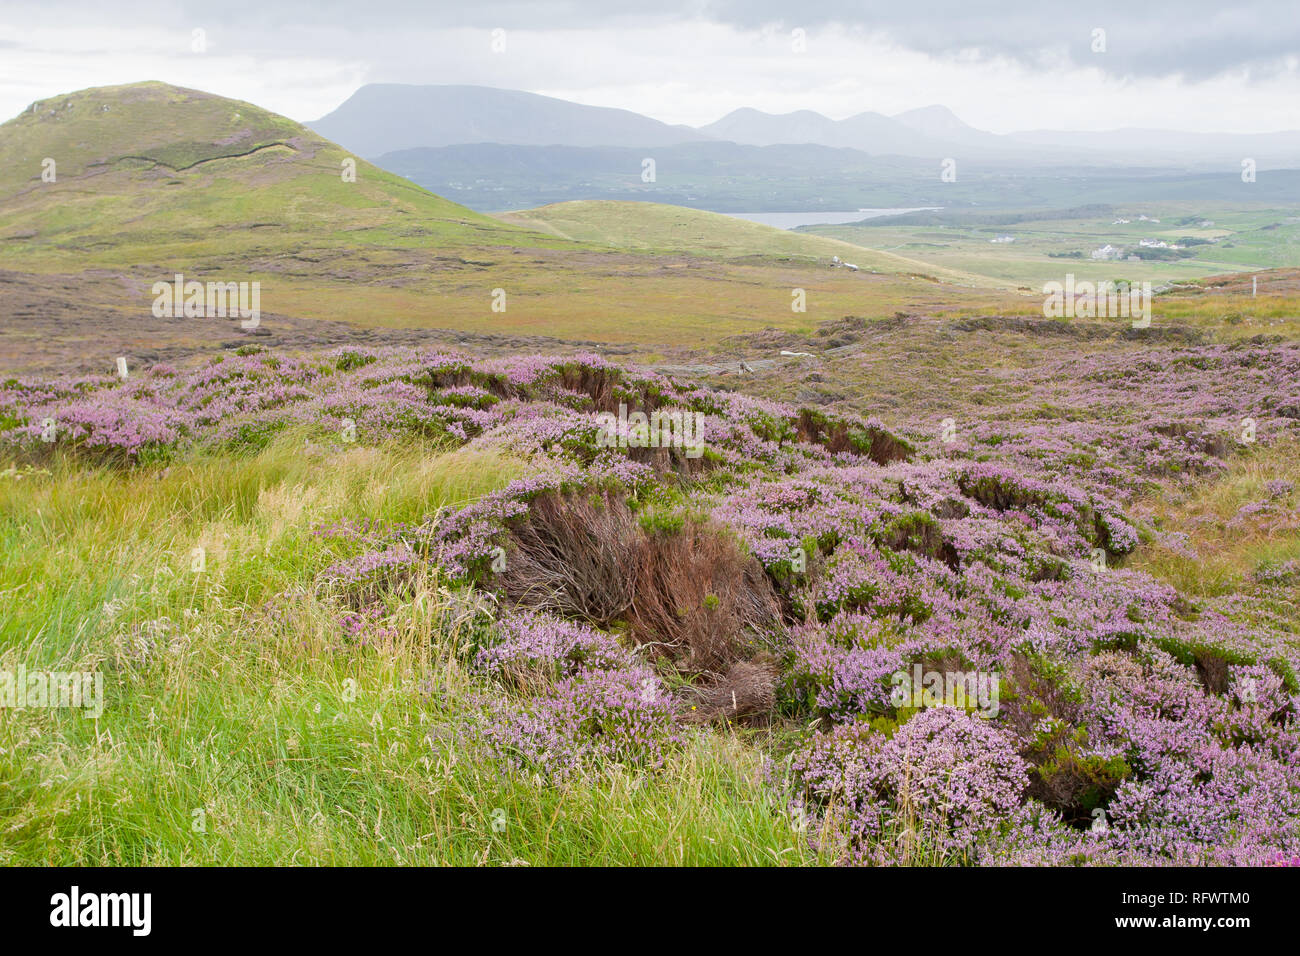 Heather-filled fields near Dunfanaghy, County Donegal, Ulster, Republic of Ireland, Europe - Stock Image